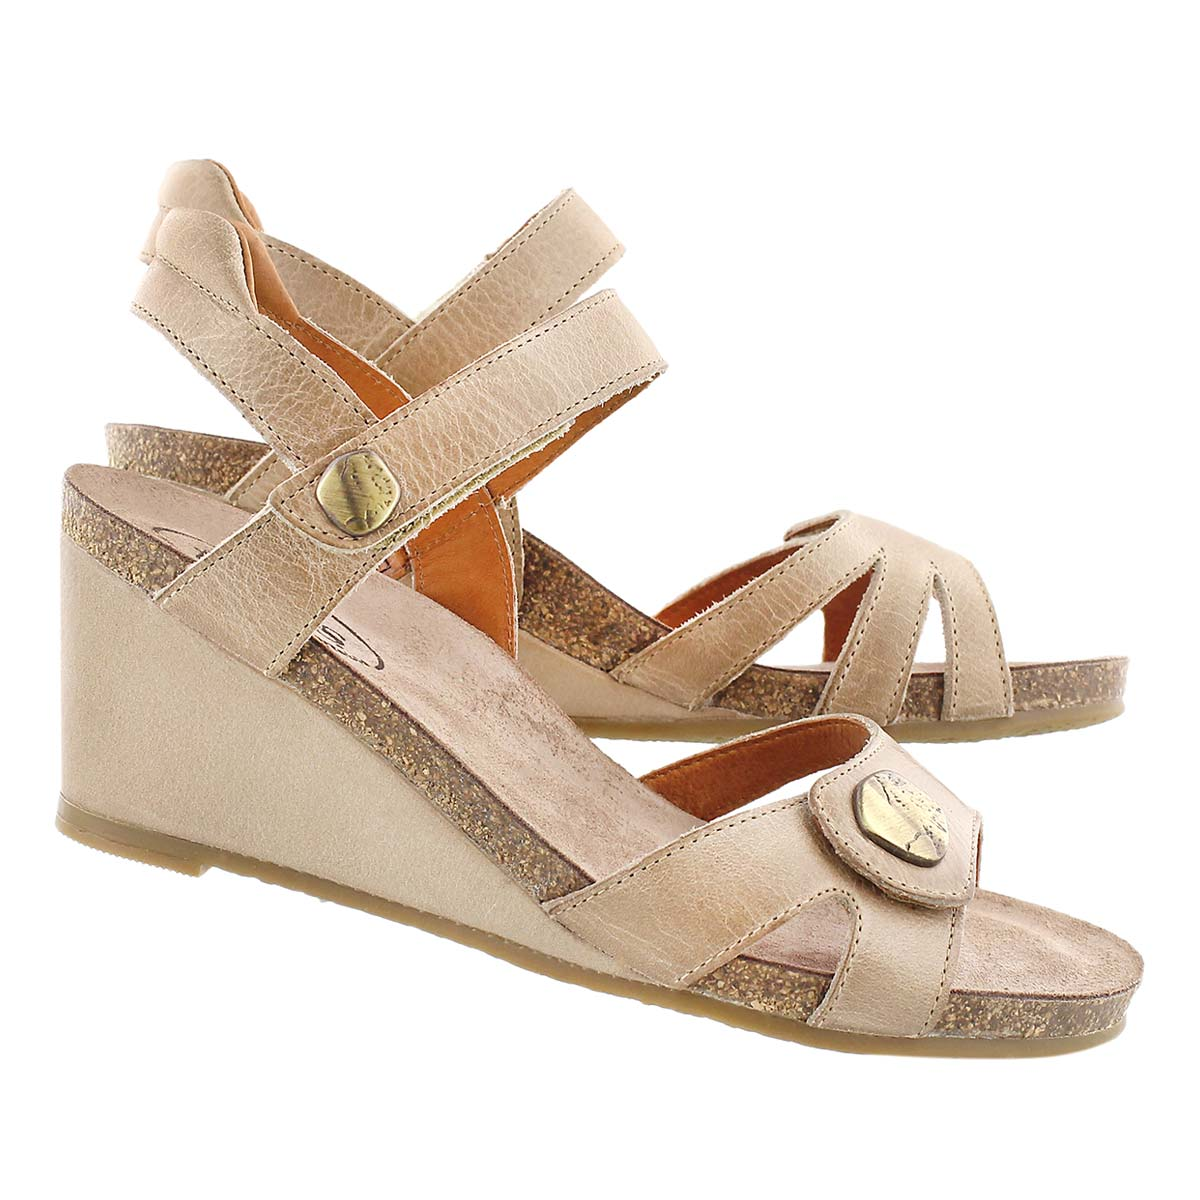 Lds Charade stone wedge sandal